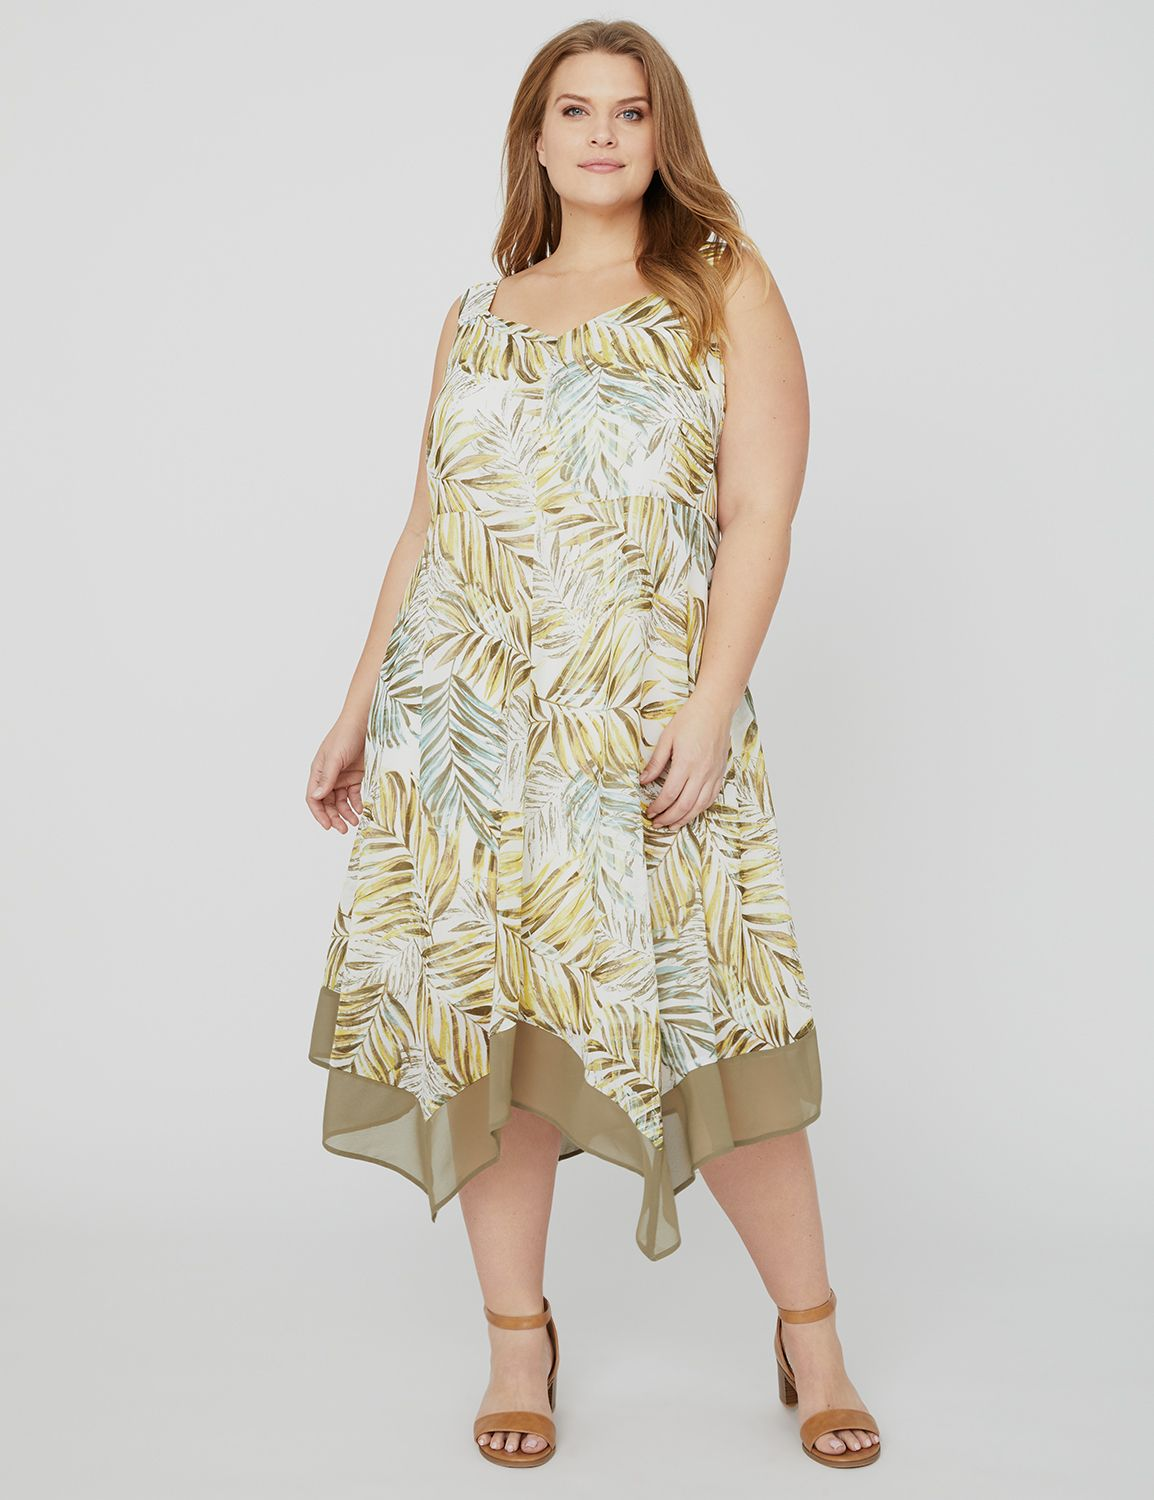 Greenwood Imprint Dress with Hankerchief Hem 1089938 Printed HANKY HEM DRESS wit MP-300102452